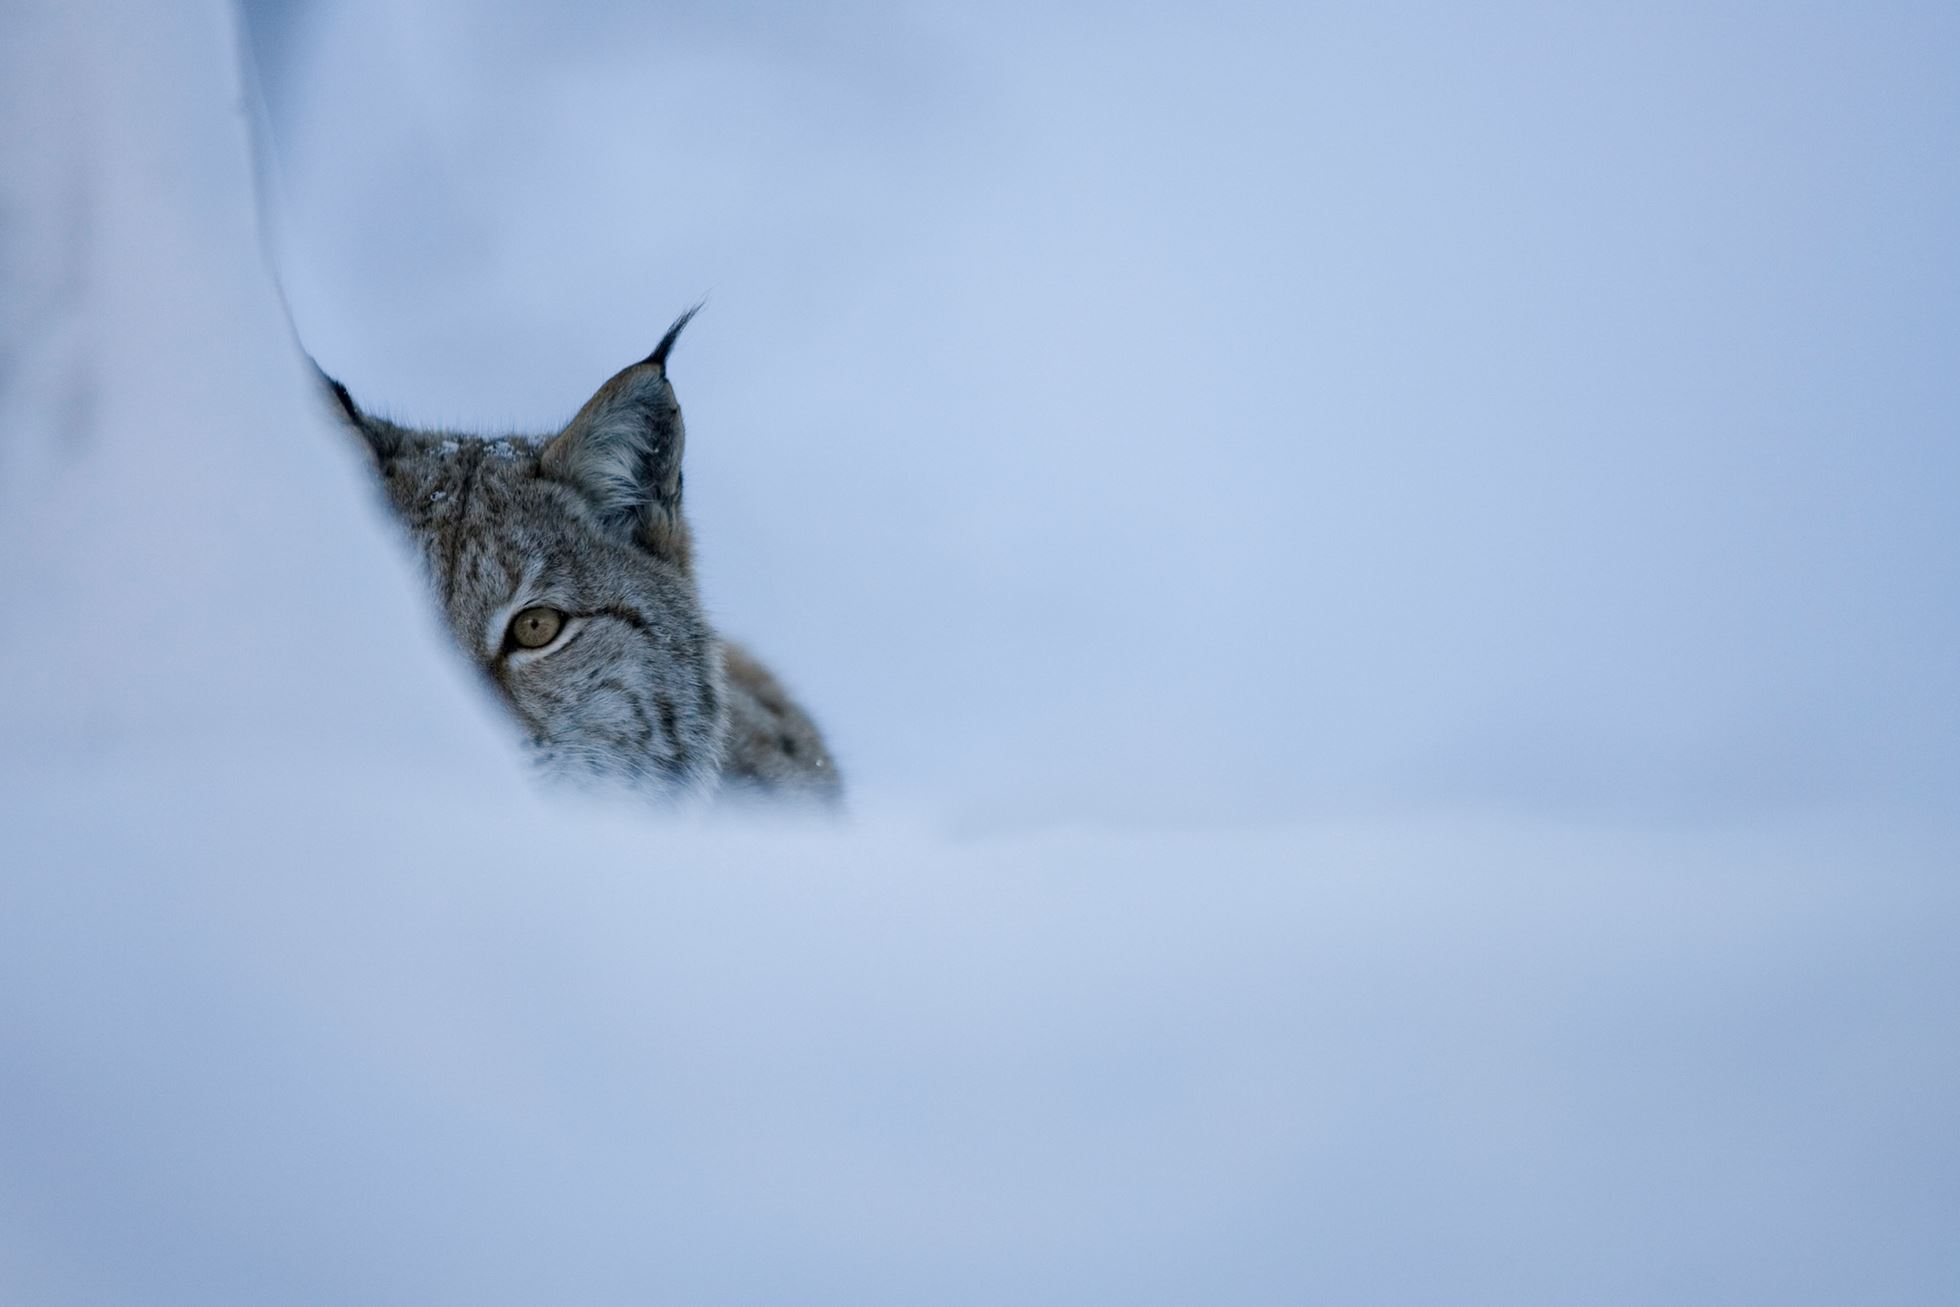 Eurasian lynx (Lynx lynx) in winter birch forest, Norway (c).